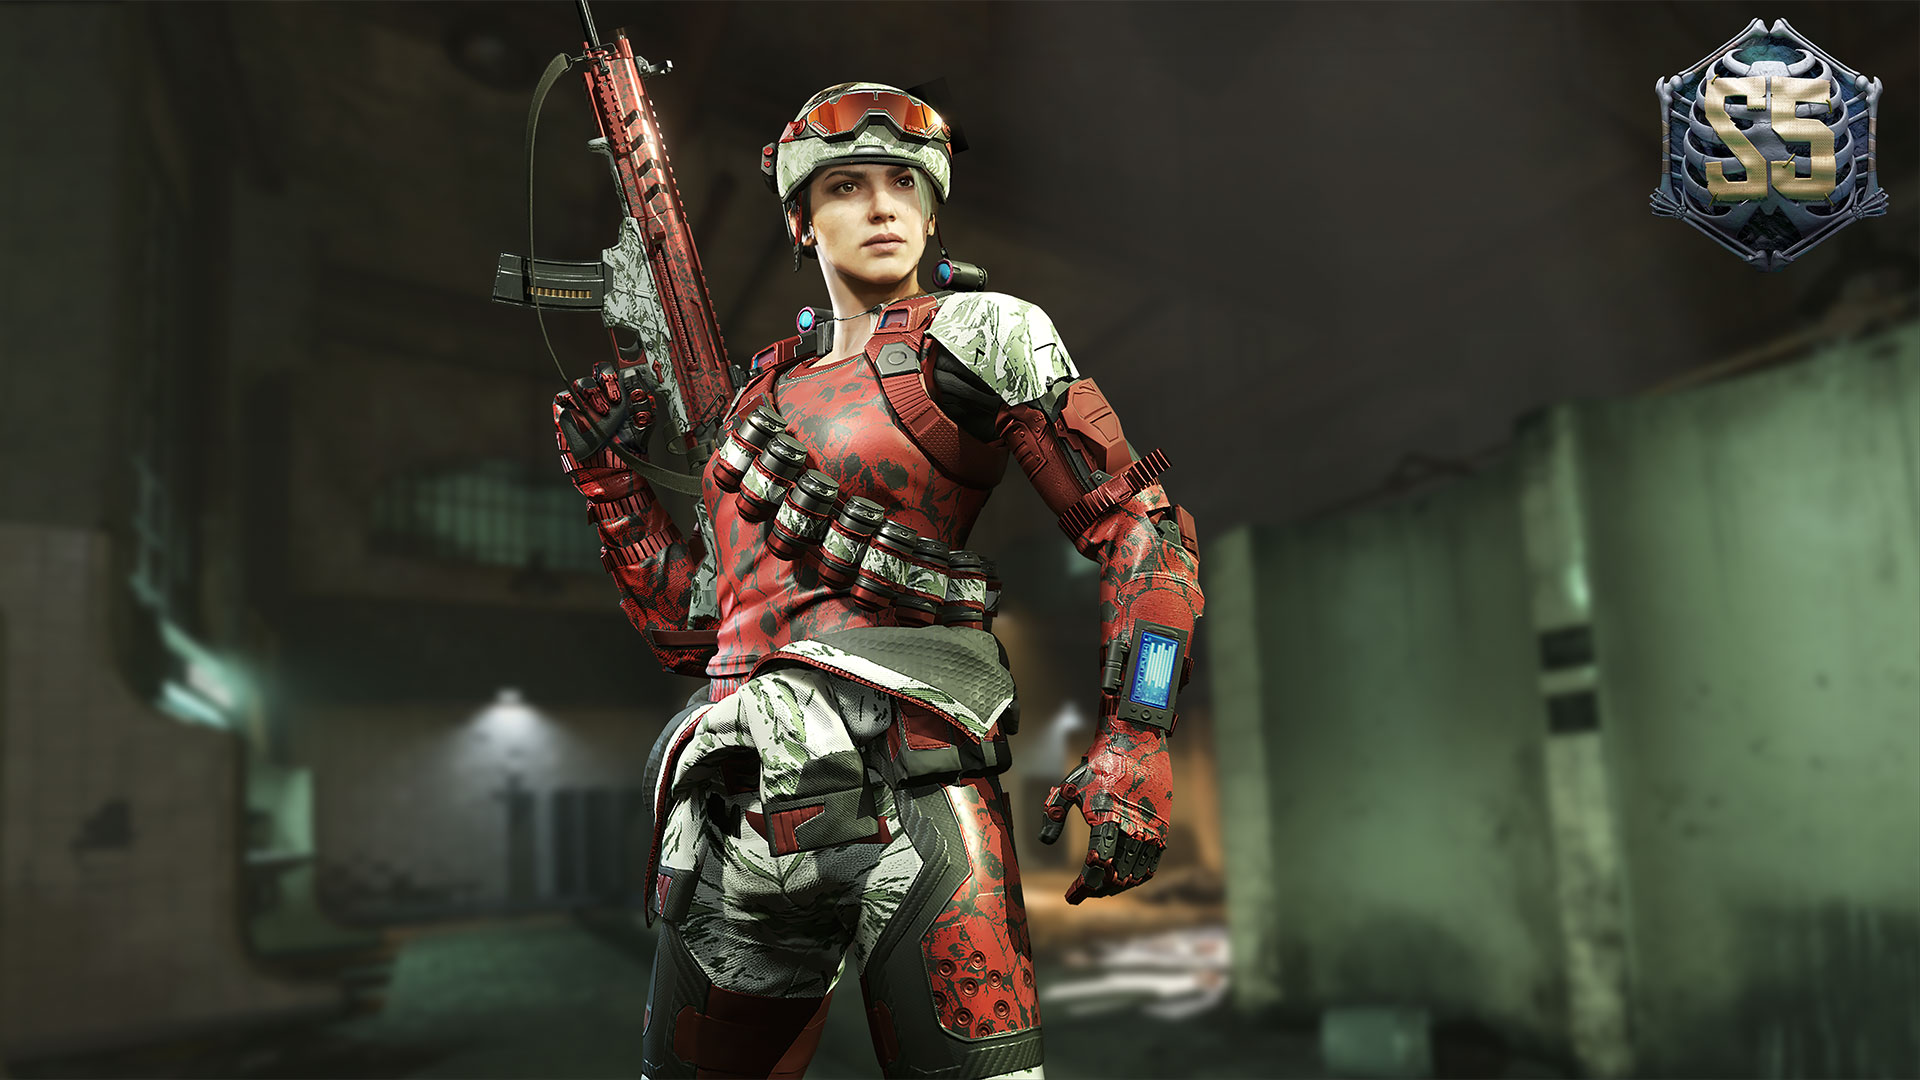 Radioactive Agent, the new Season of Call of Duty®: Mobile, is now live! - Image 1